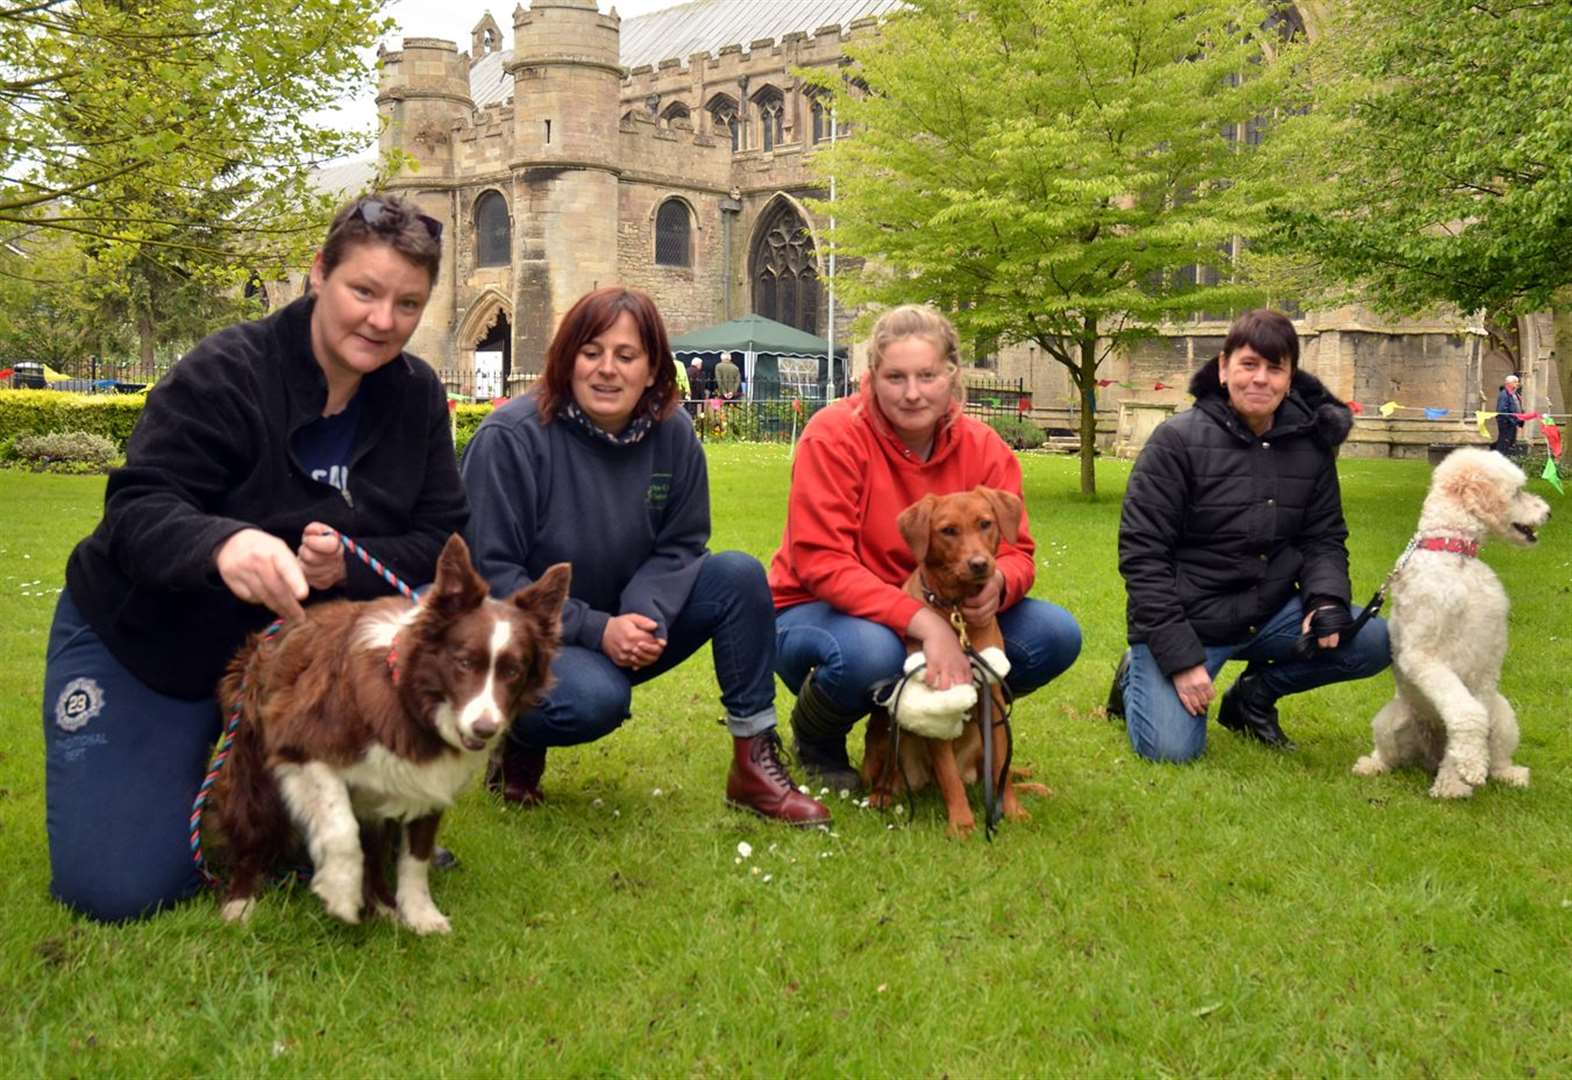 PICTURE SPECIAL: Dogs on show at All Saints Church Holbeach